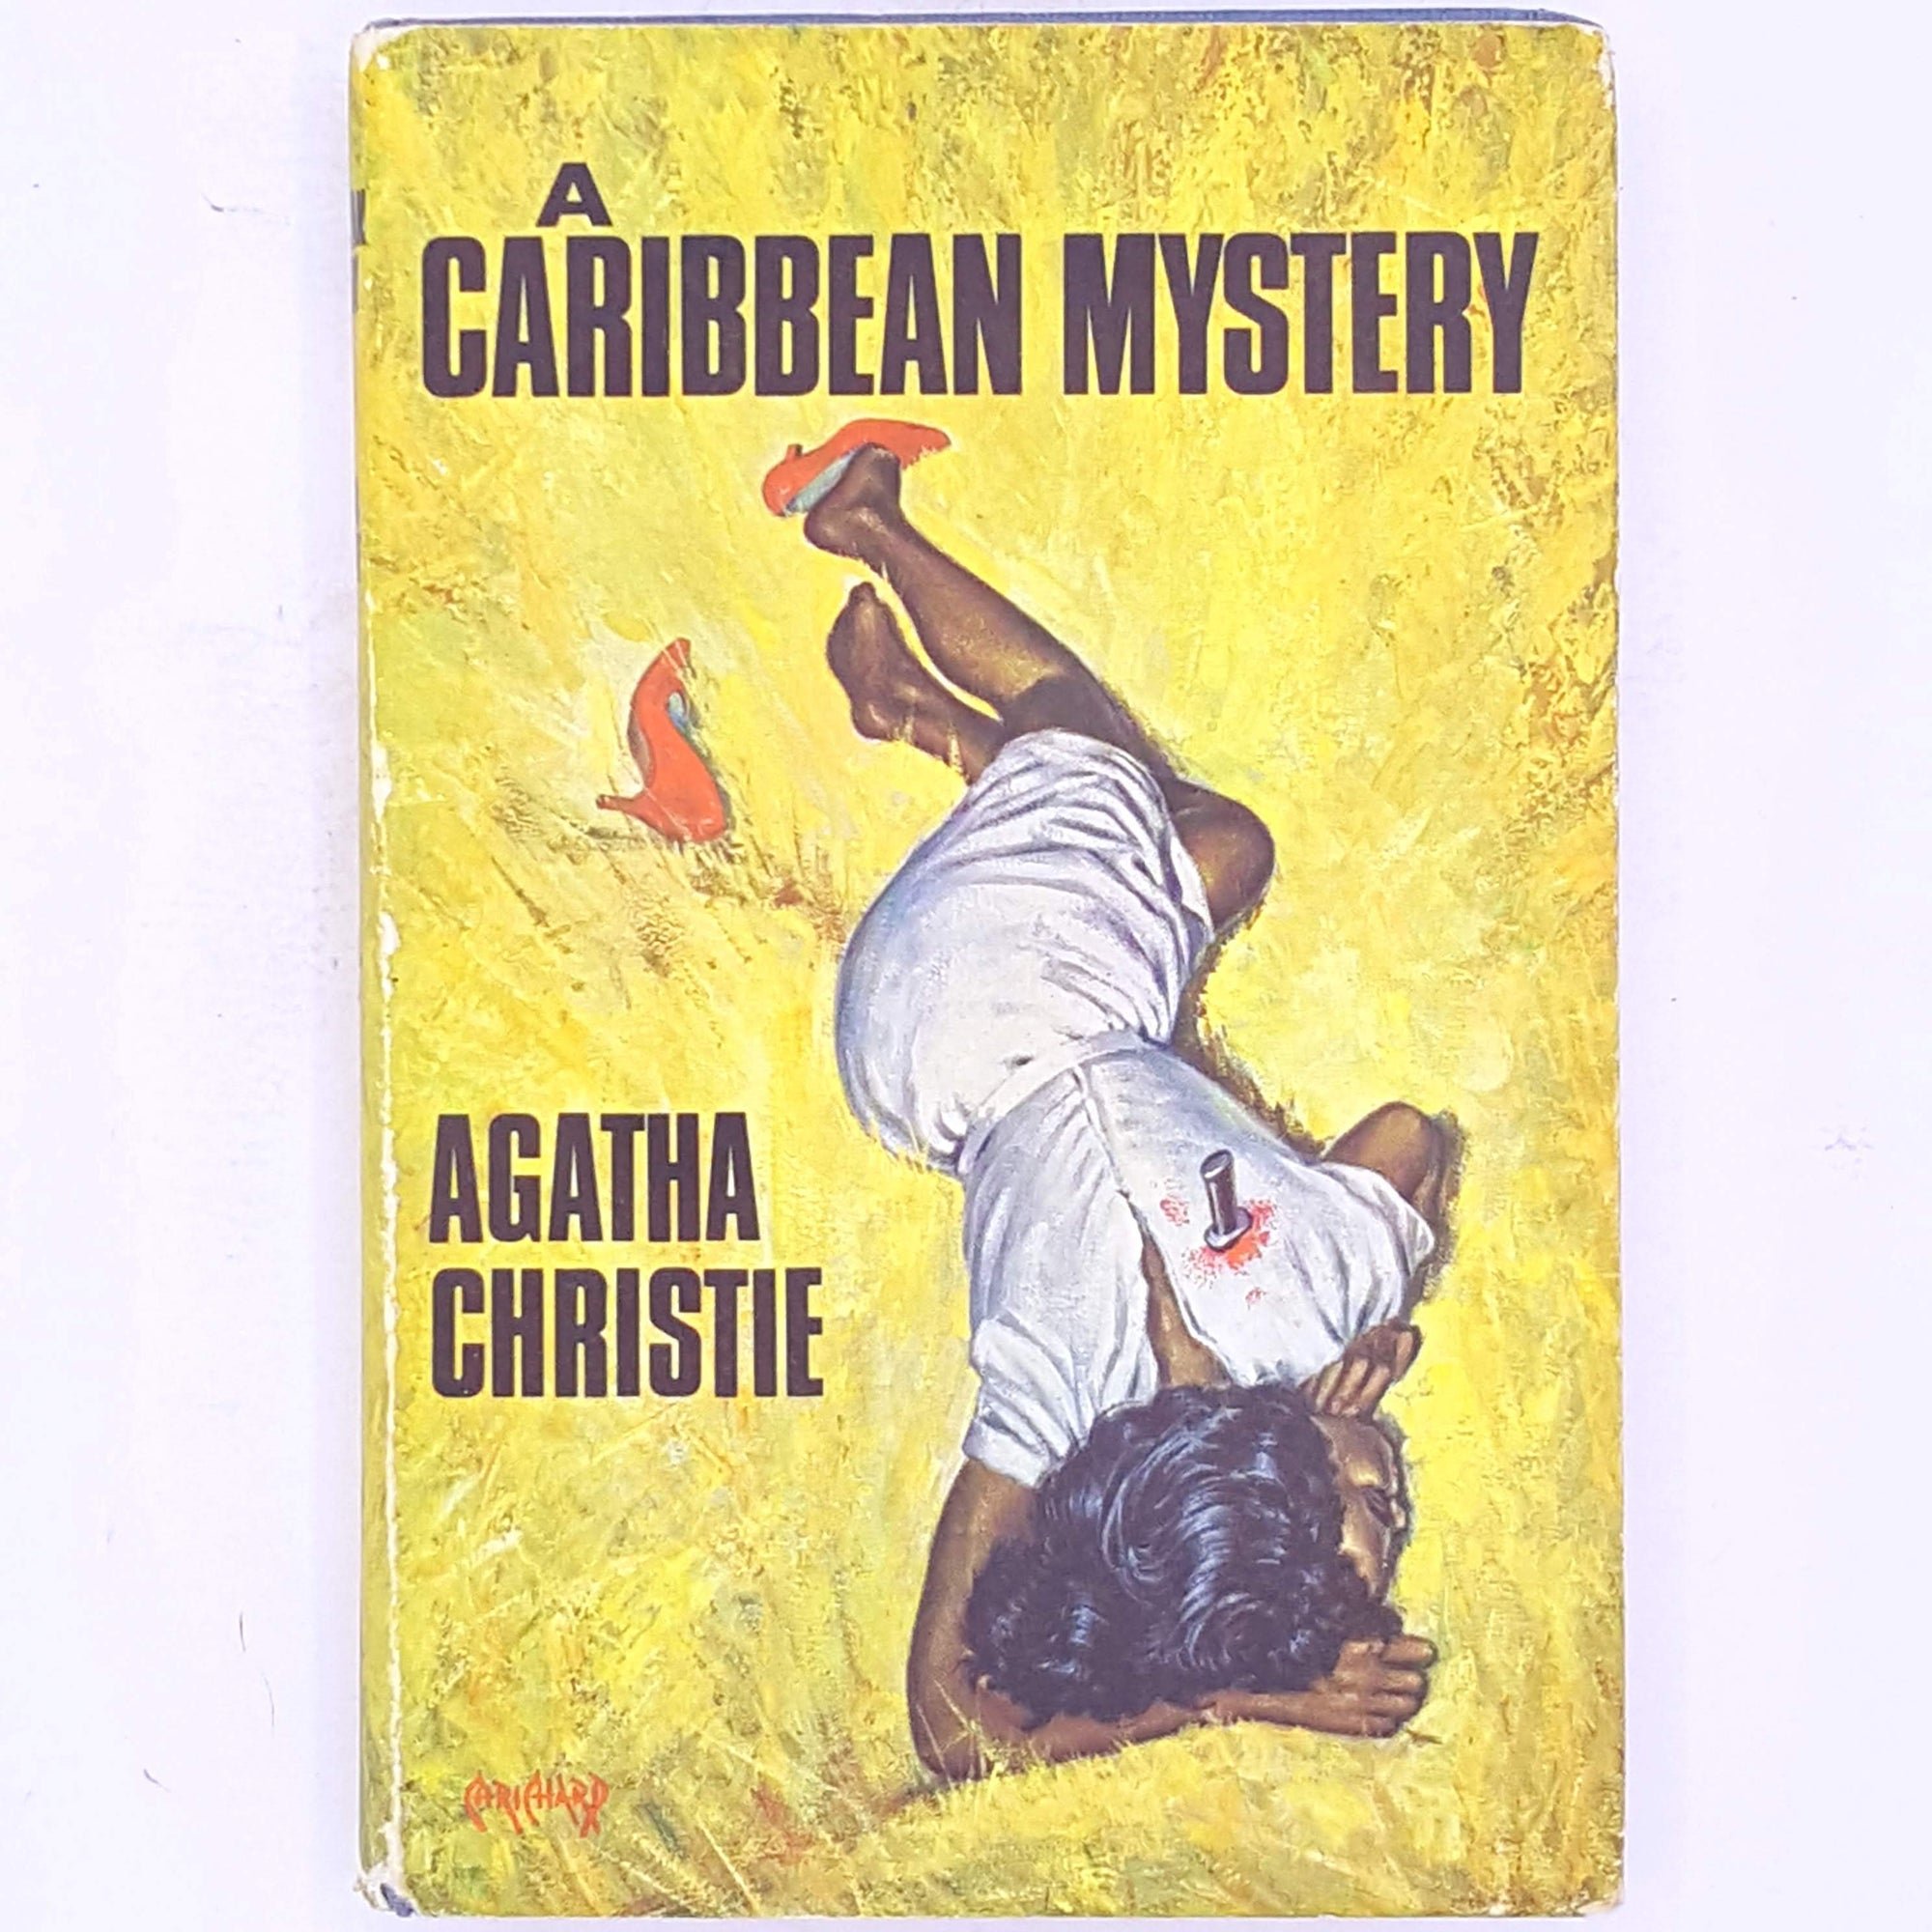 patterned-a-Caribbean-mystery-thrift-books-decorative-vintage-country-house-library-mystery-detective-crime-fiction-novels-female-author-miss-marple-poirot- Agatha-christie-antique-old-classic-